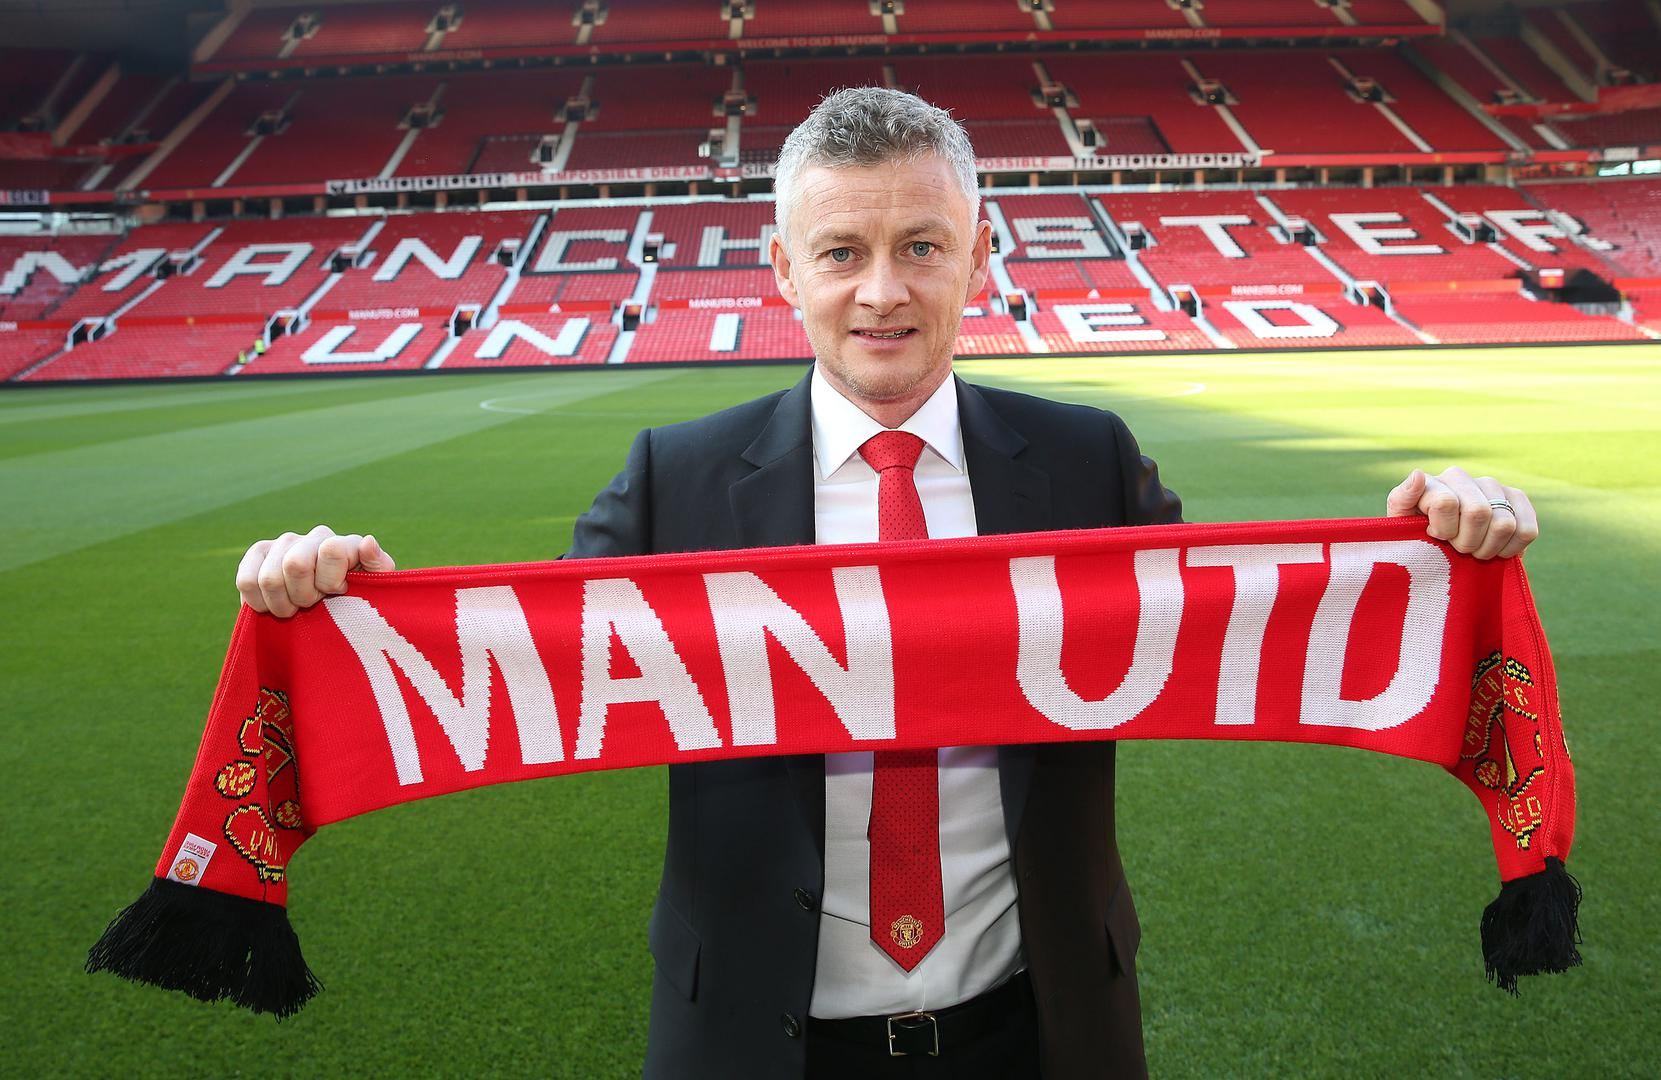 Ole Gunnar Solskjaer holds a Man Utd scarf after being appointed as permanent manager on 28 March 2019